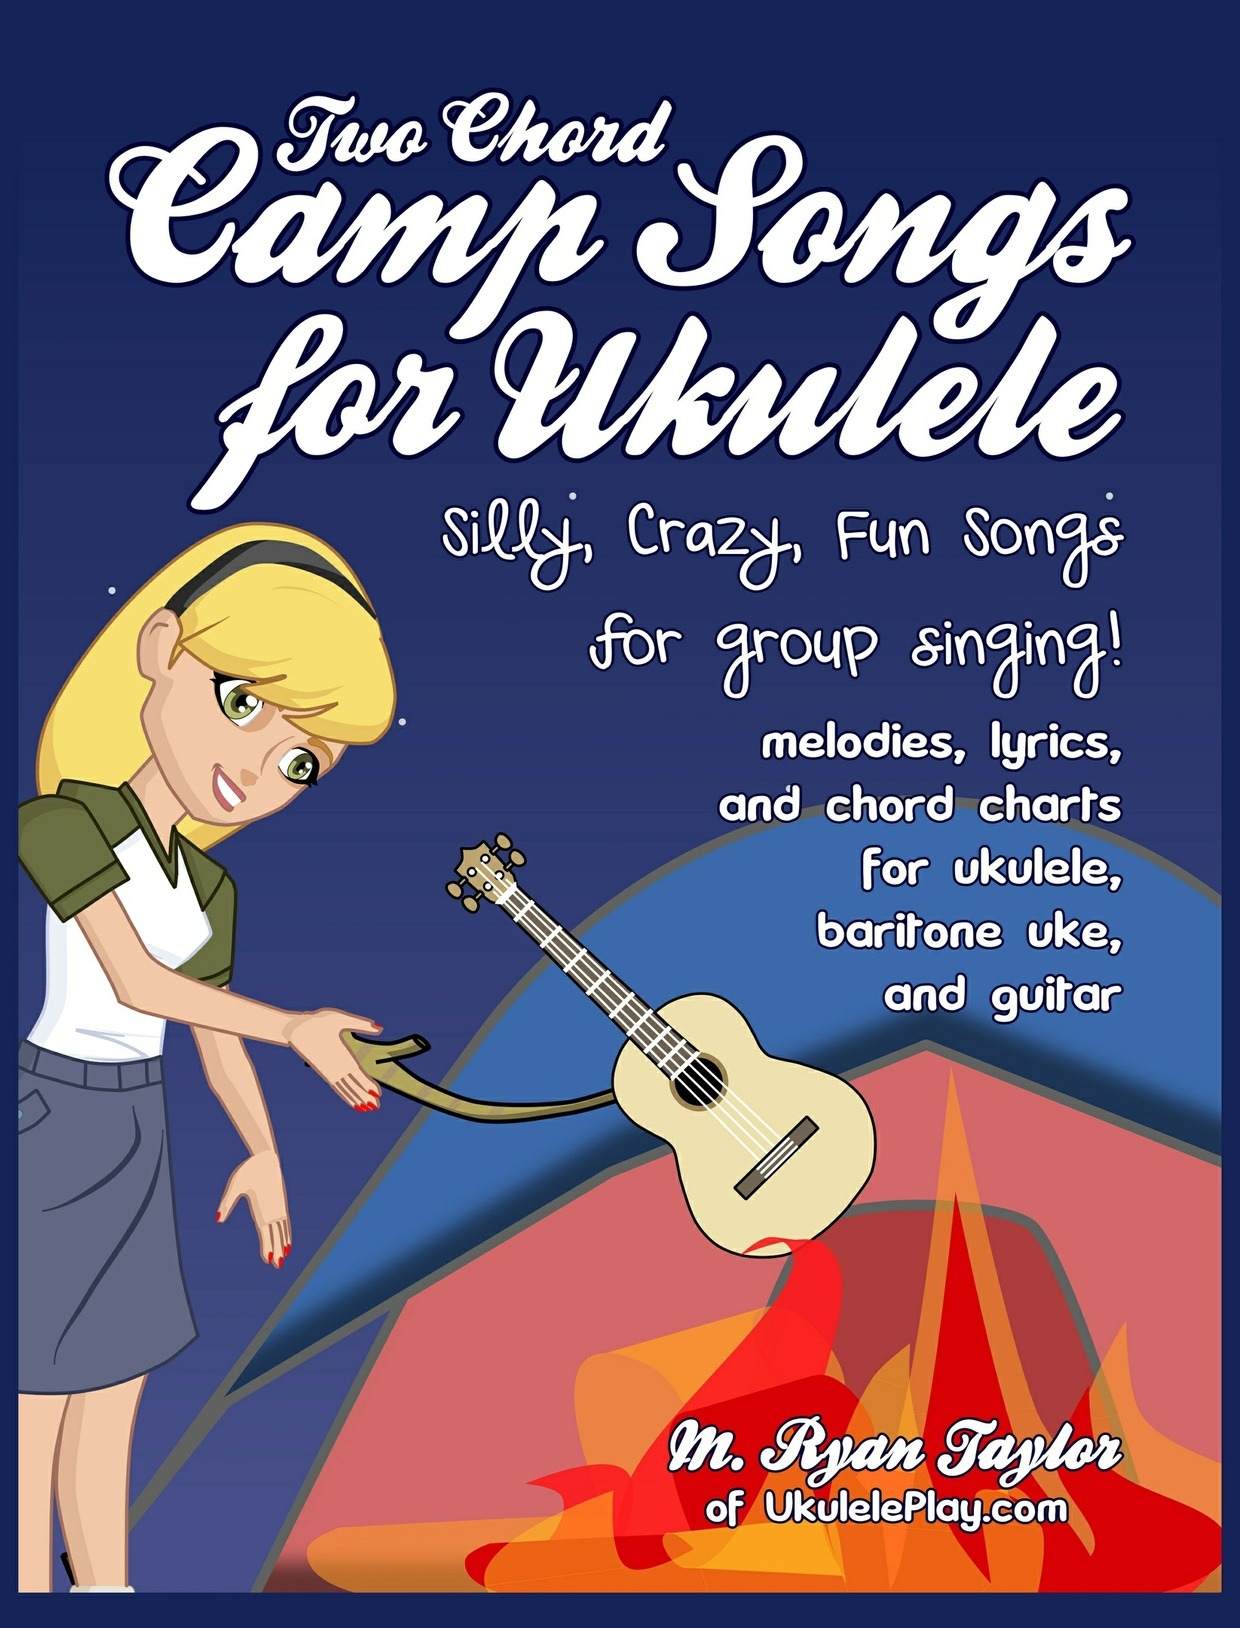 2 Chord Camp Songs for Ukulele : Silly, Crazy, Fun Songs for Group SInging